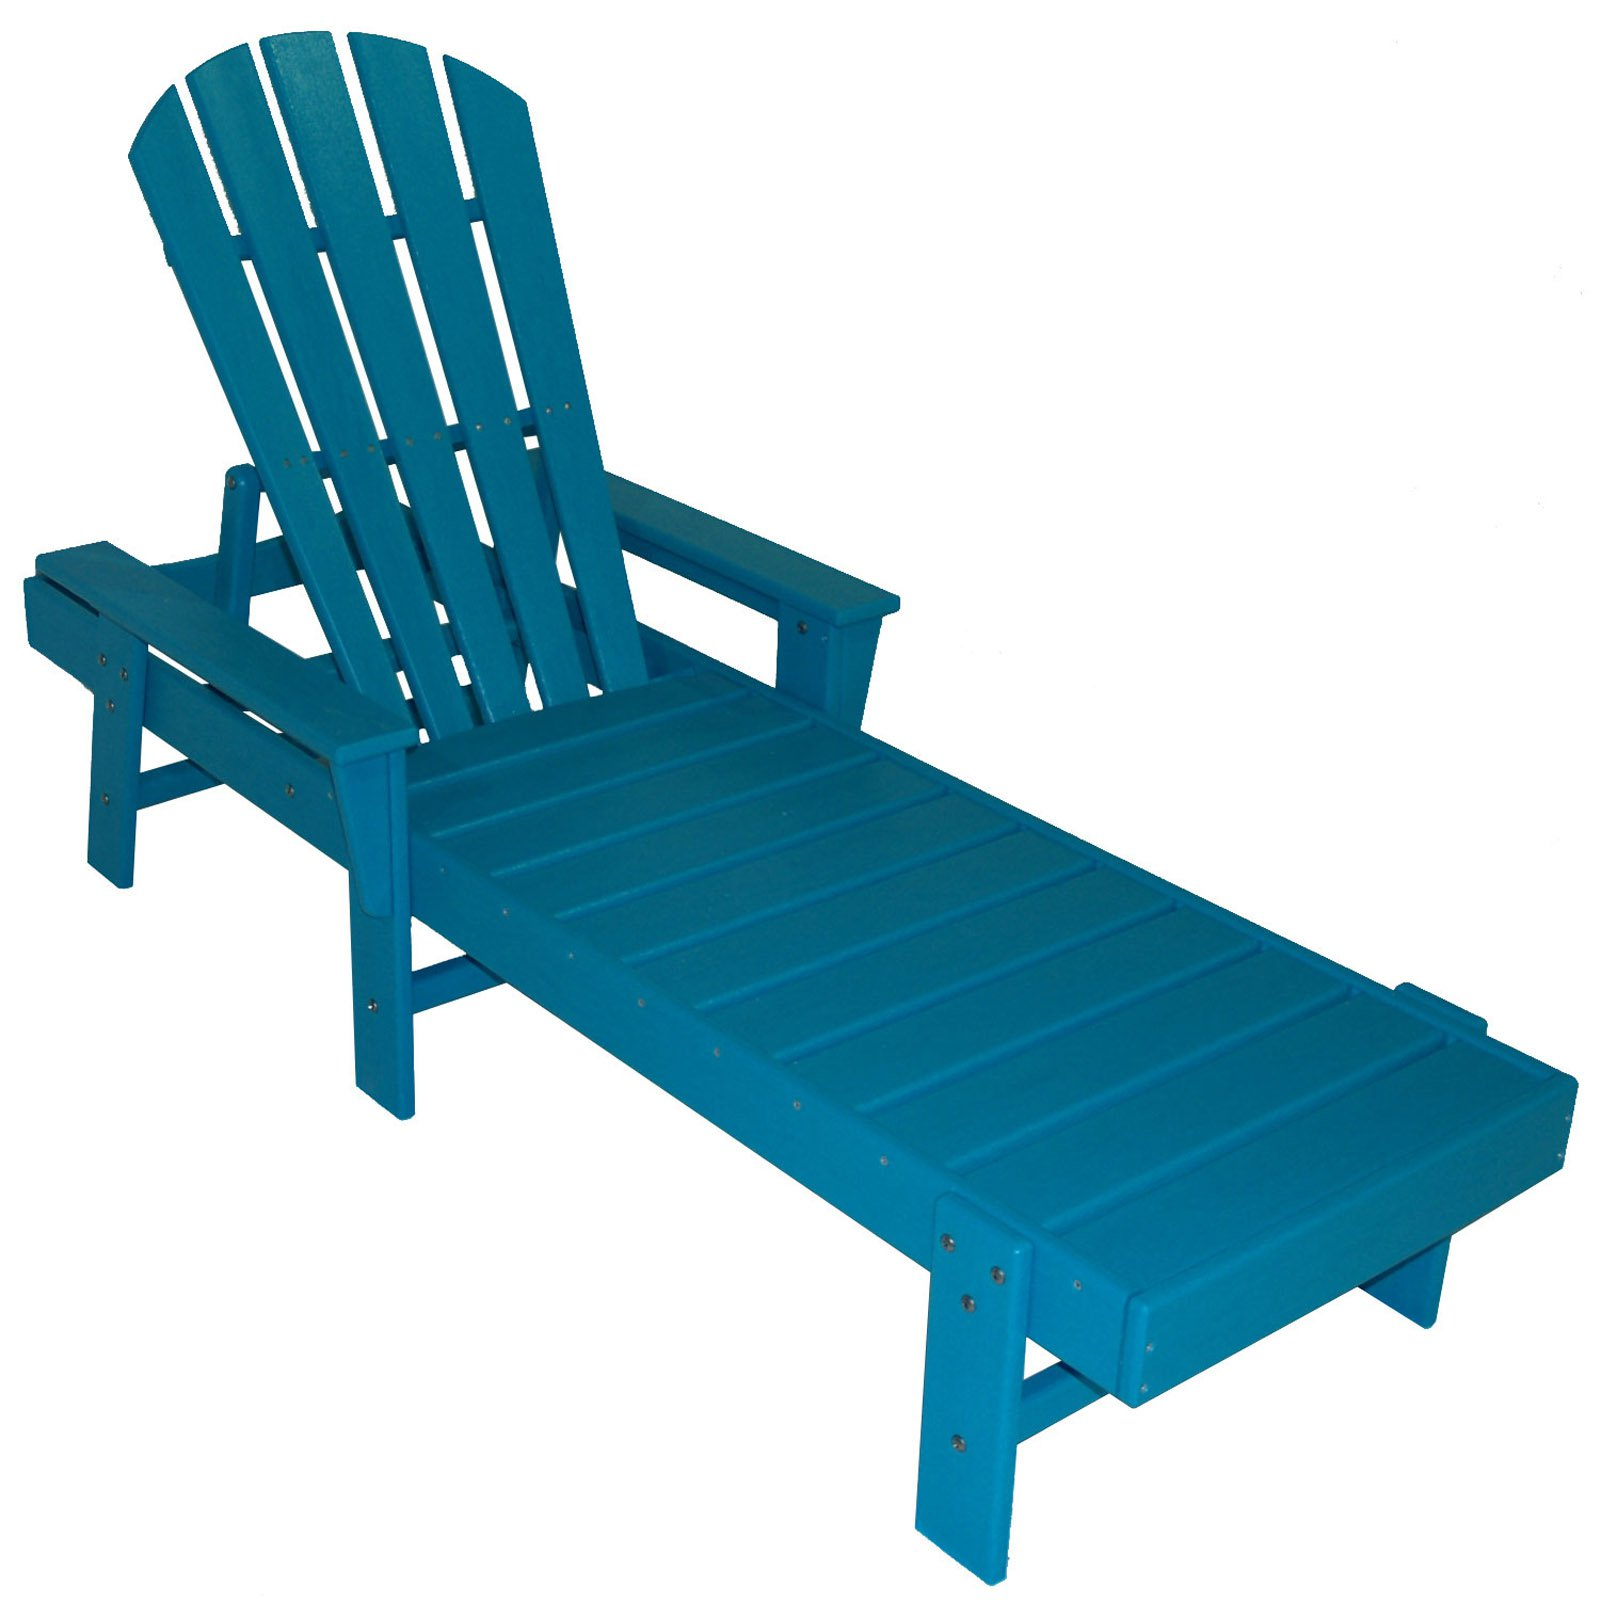 POLYWOODu0026reg; South Beach Recycled Plastic Chaise Lounge   Walmart.com